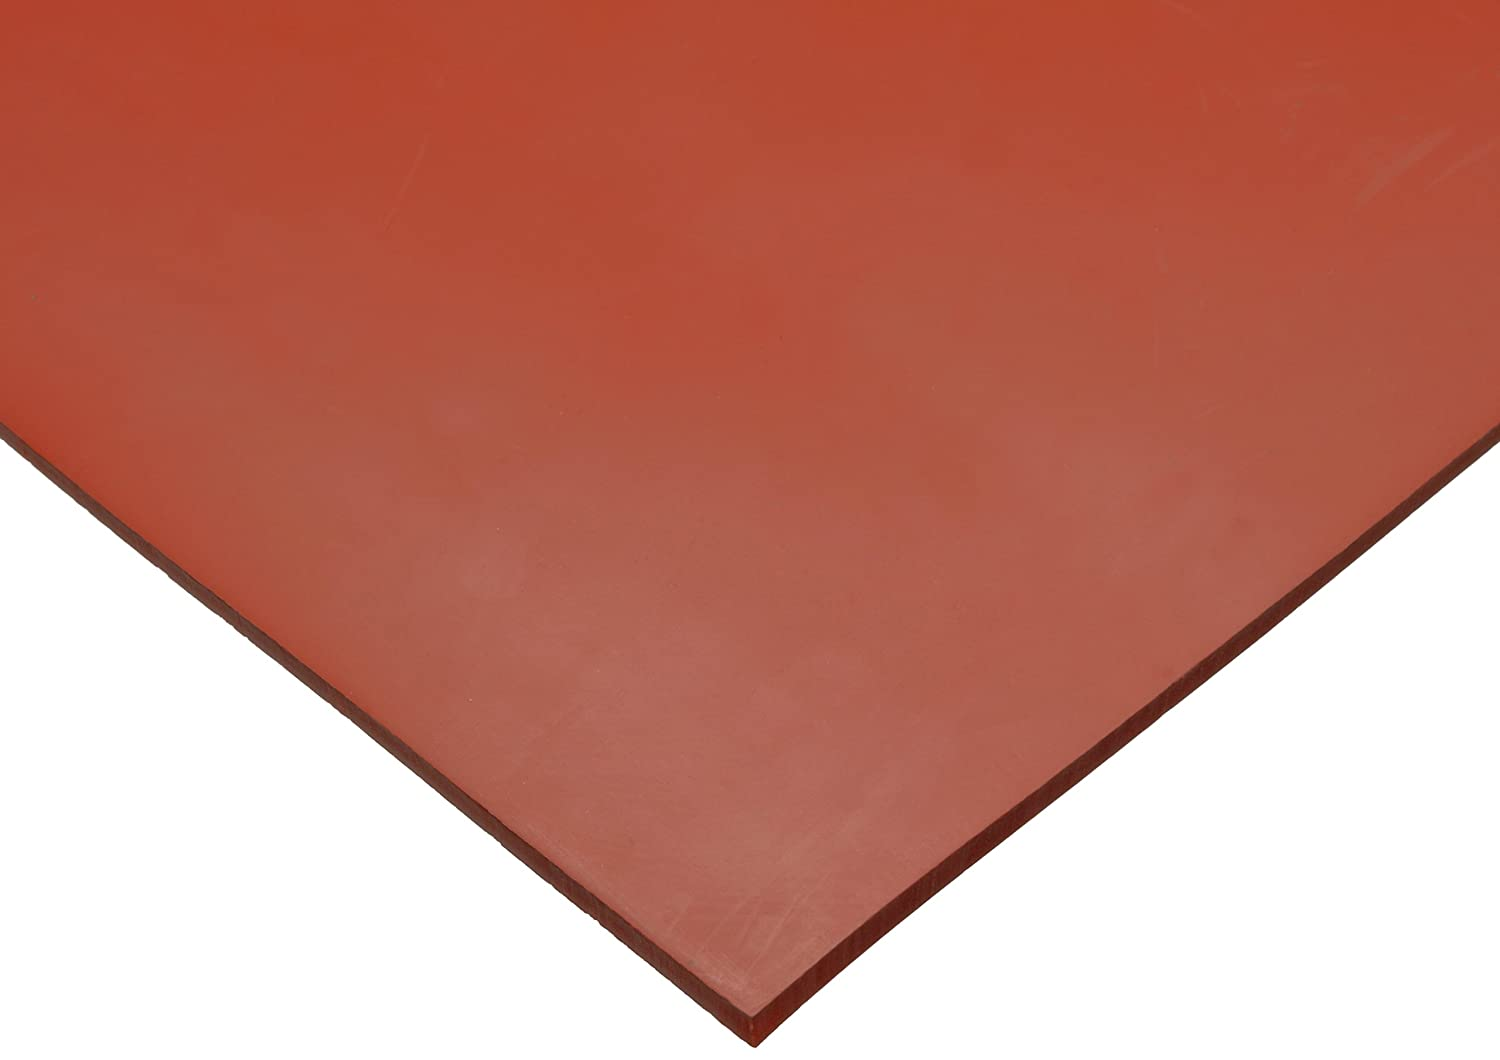 "Silicone Sheet, 70A Durometer, Smooth Finish, No Backing, Red, 1/16"" Thickness, 12"" Width, 12"" Length"